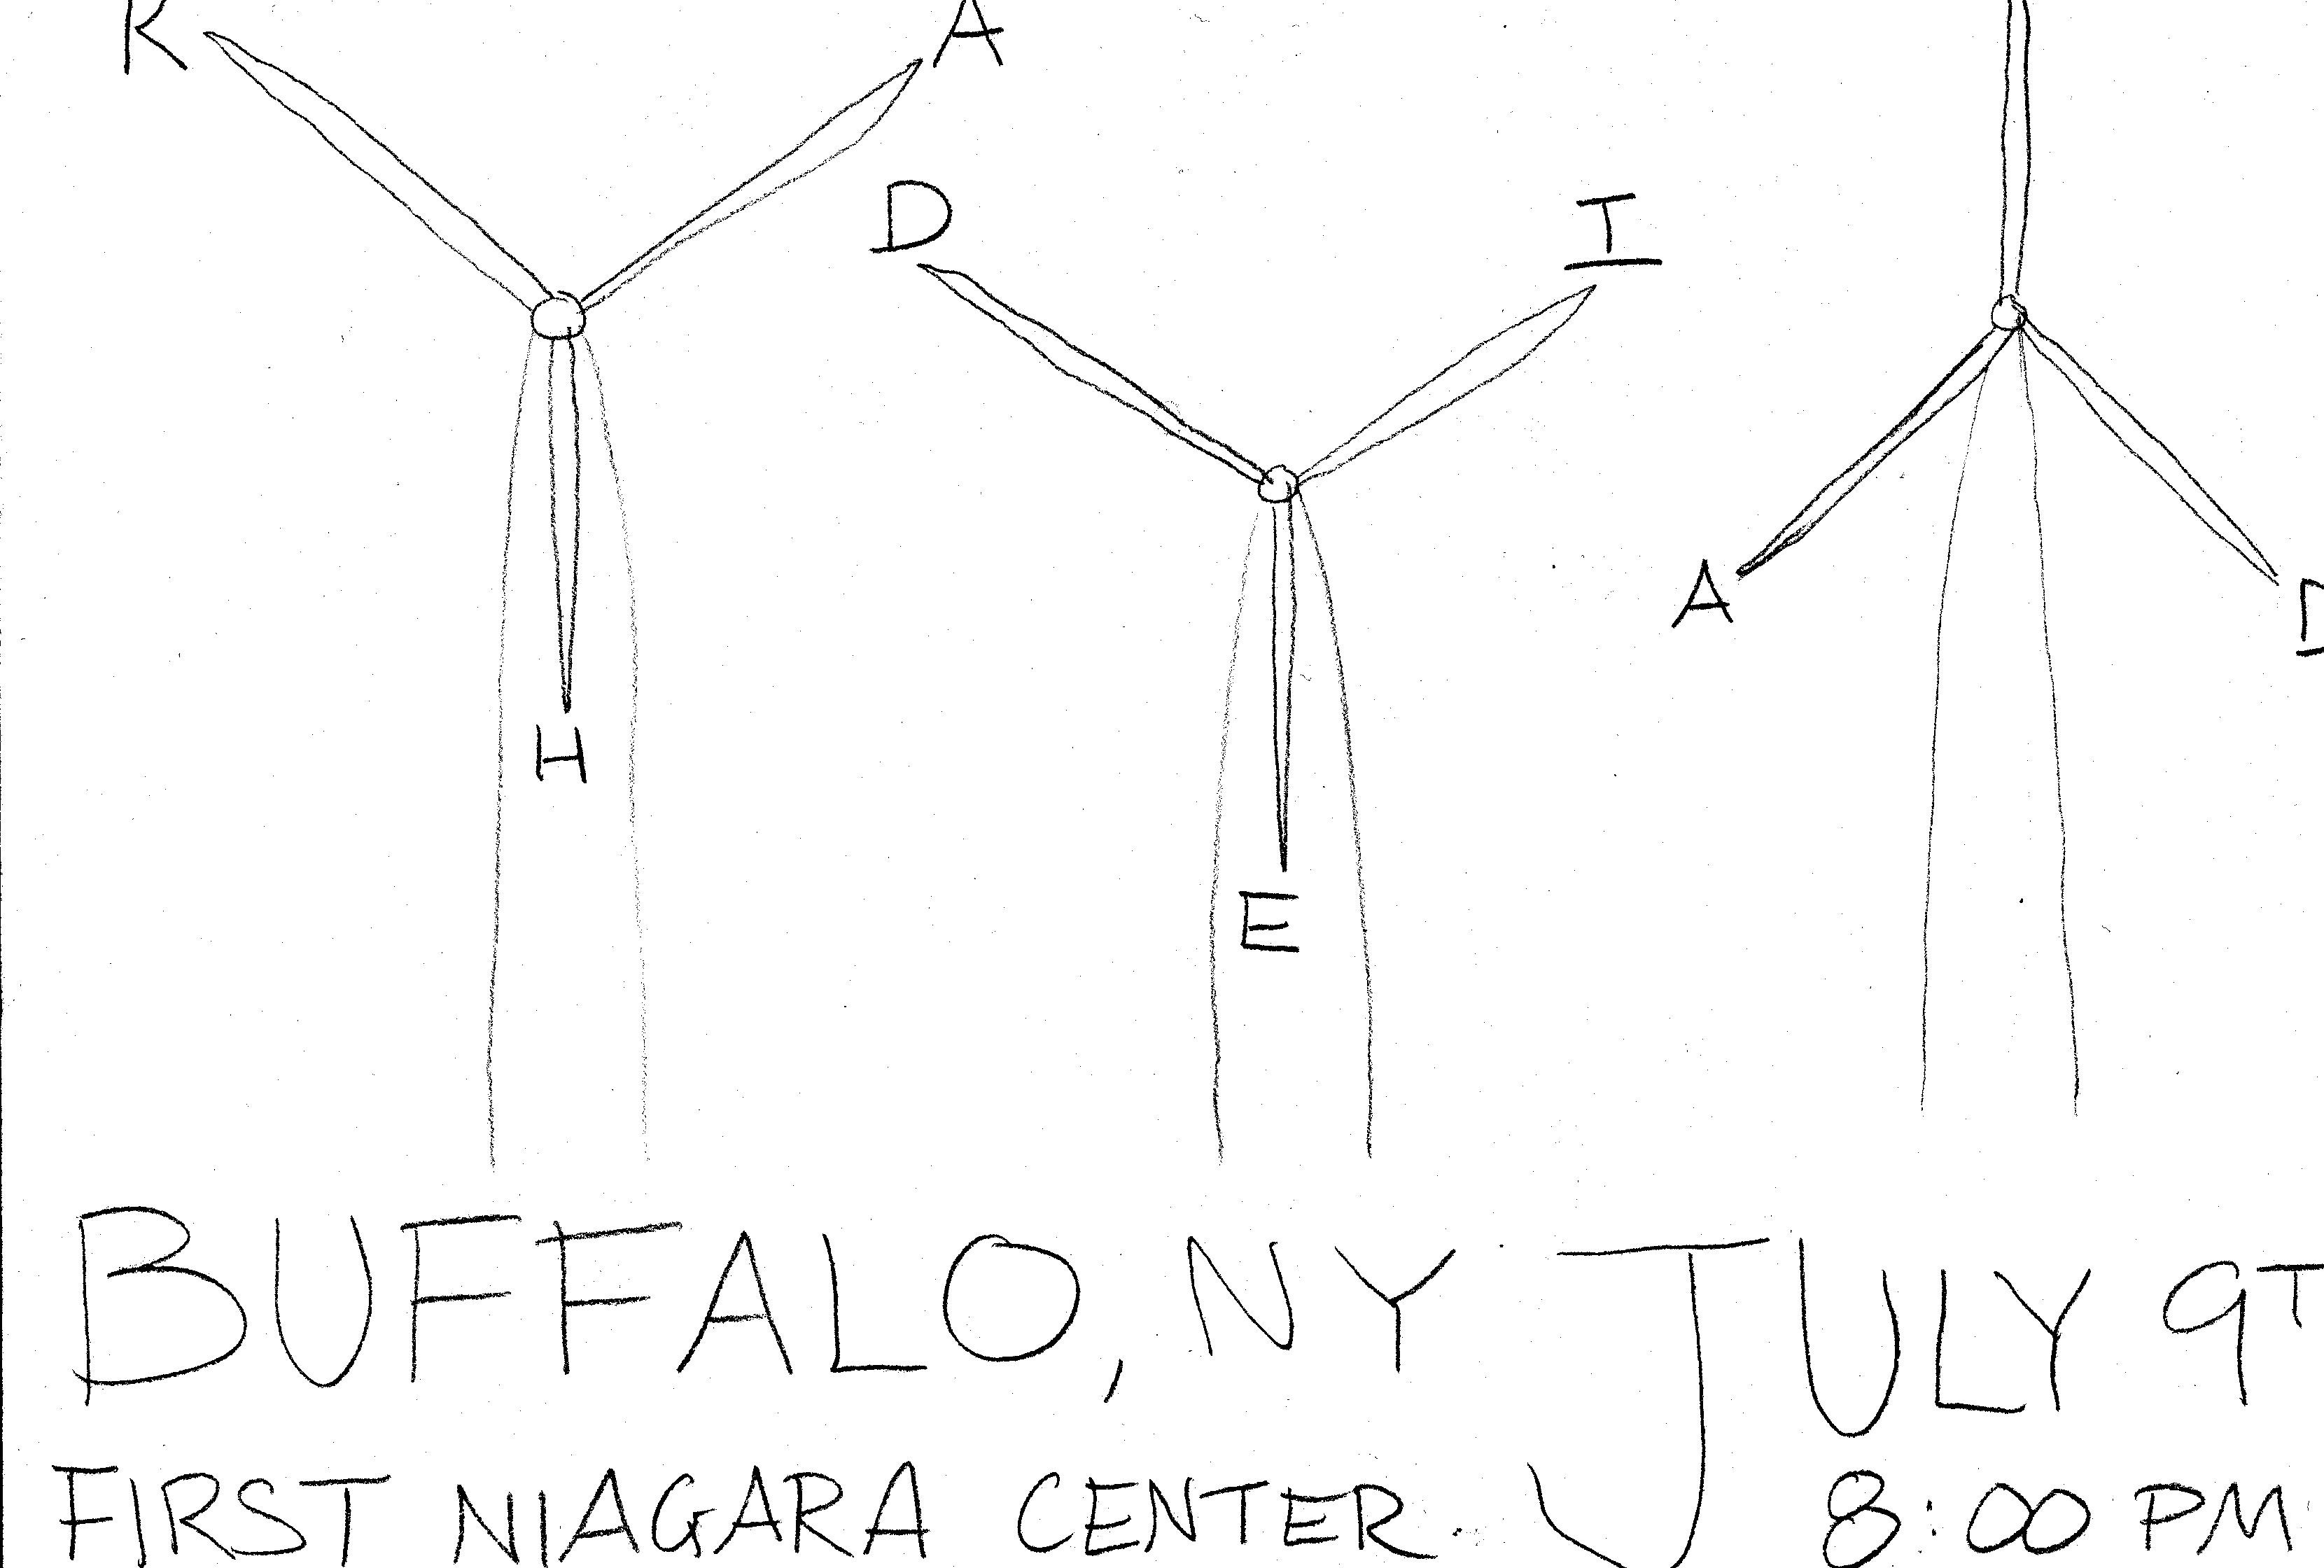 If Radiohead came to Buffalo... - image 3 - student project